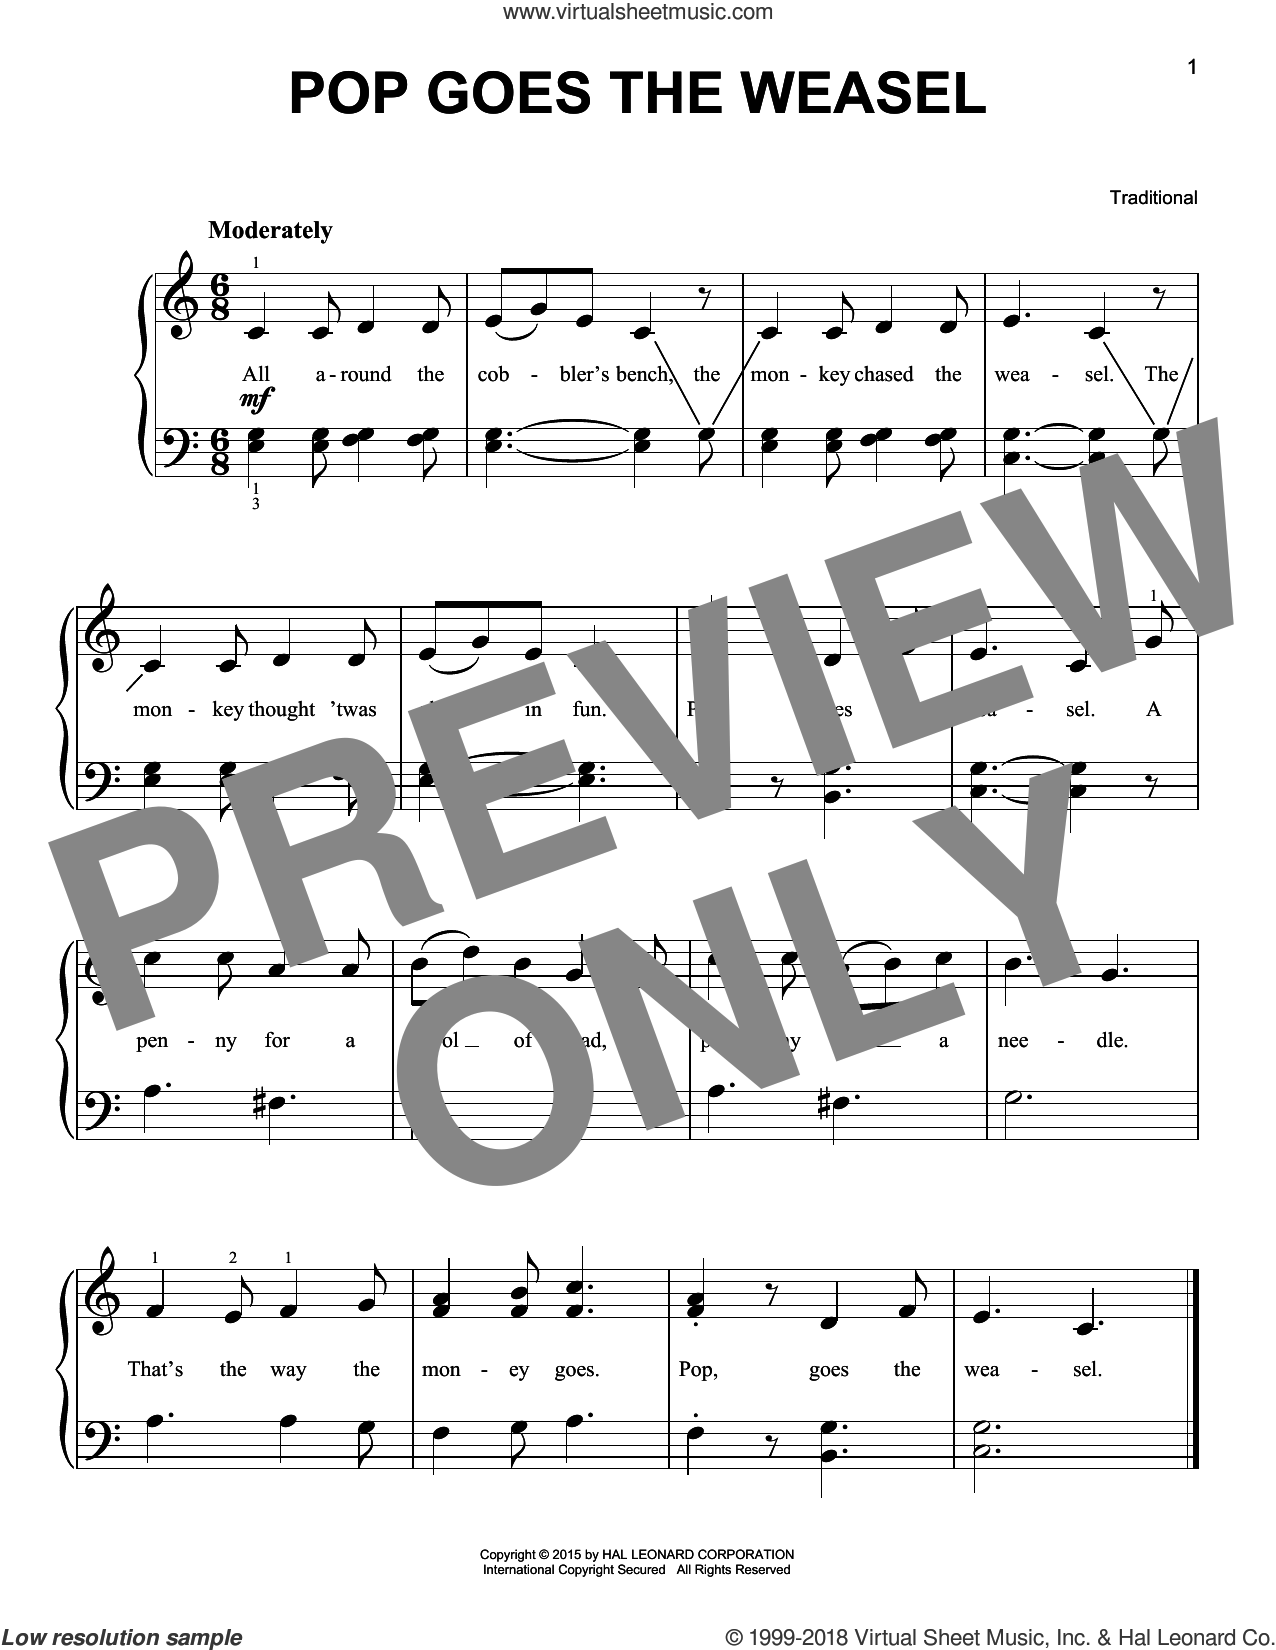 Pop Goes The Weasel sheet music for piano solo, beginner skill level